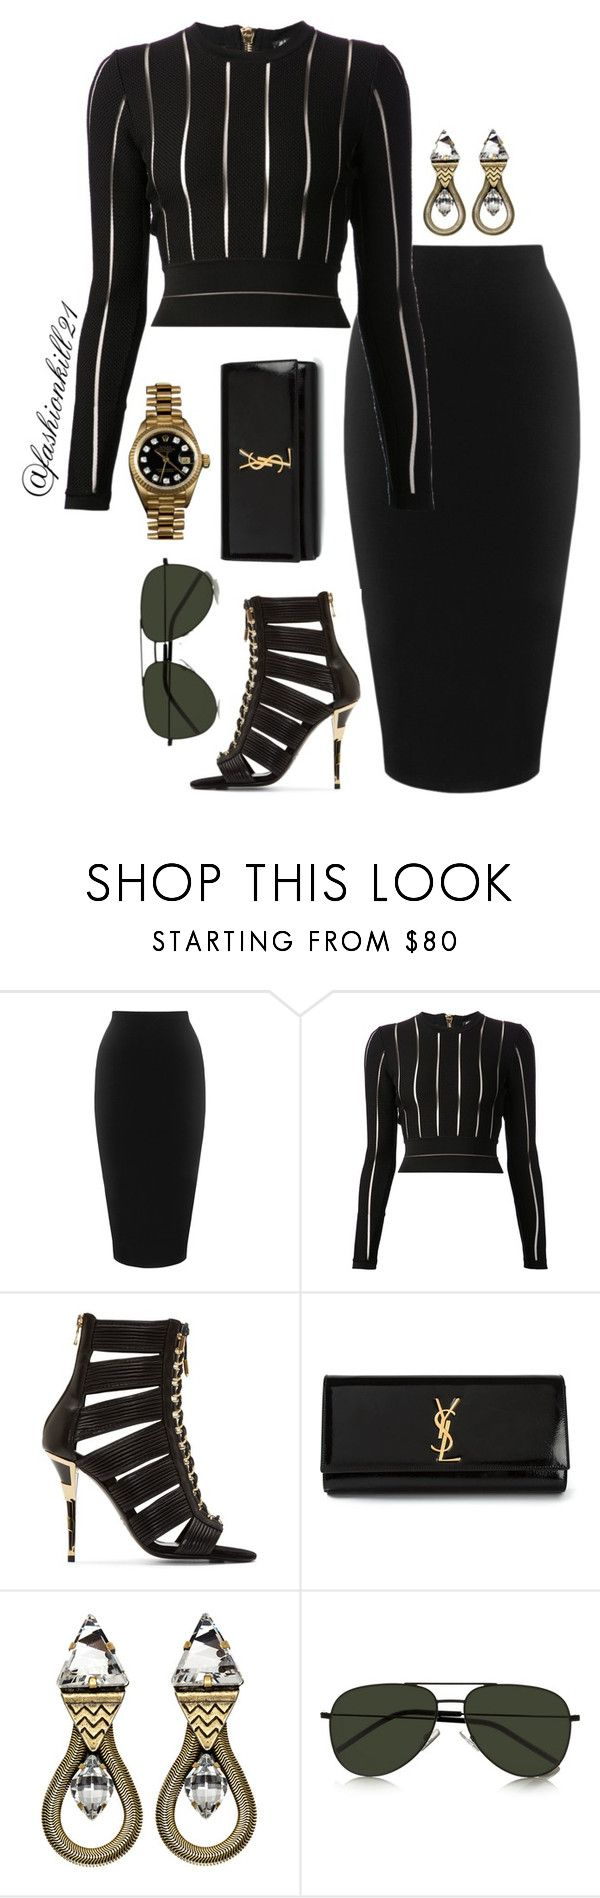 """""""Flashback Look 22"""" by fashionkill21 ❤ liked on Polyvore featuring Whistles, Balmain, Yves Saint Laurent, Lionette, Rolex, women's clothing, women, female, woman and misses"""